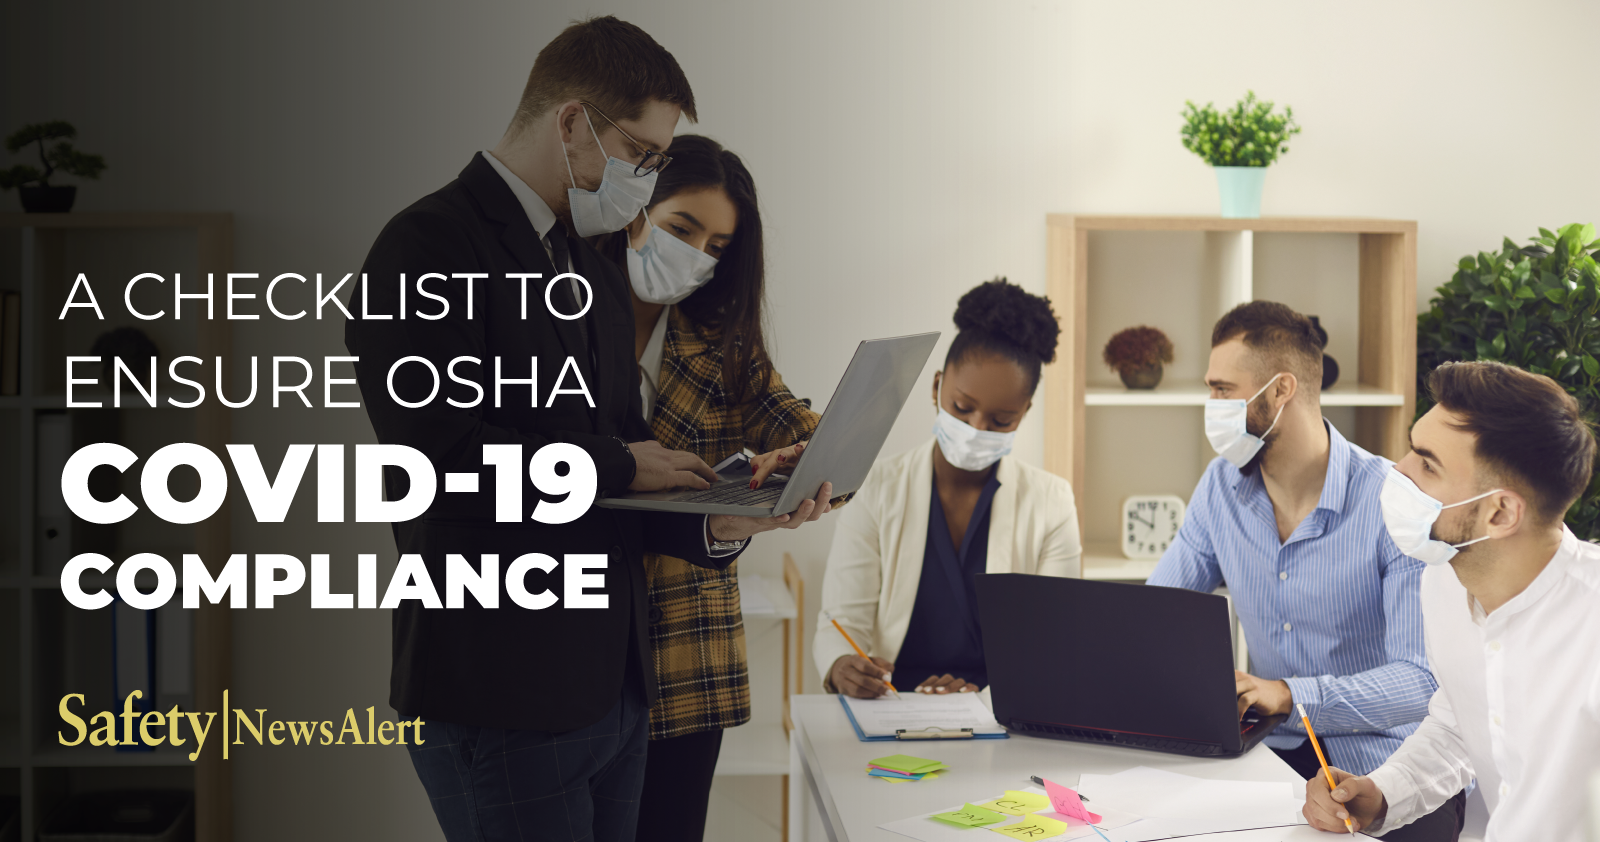 A Checklist To Ensure OSHA COVID-19 Compliance